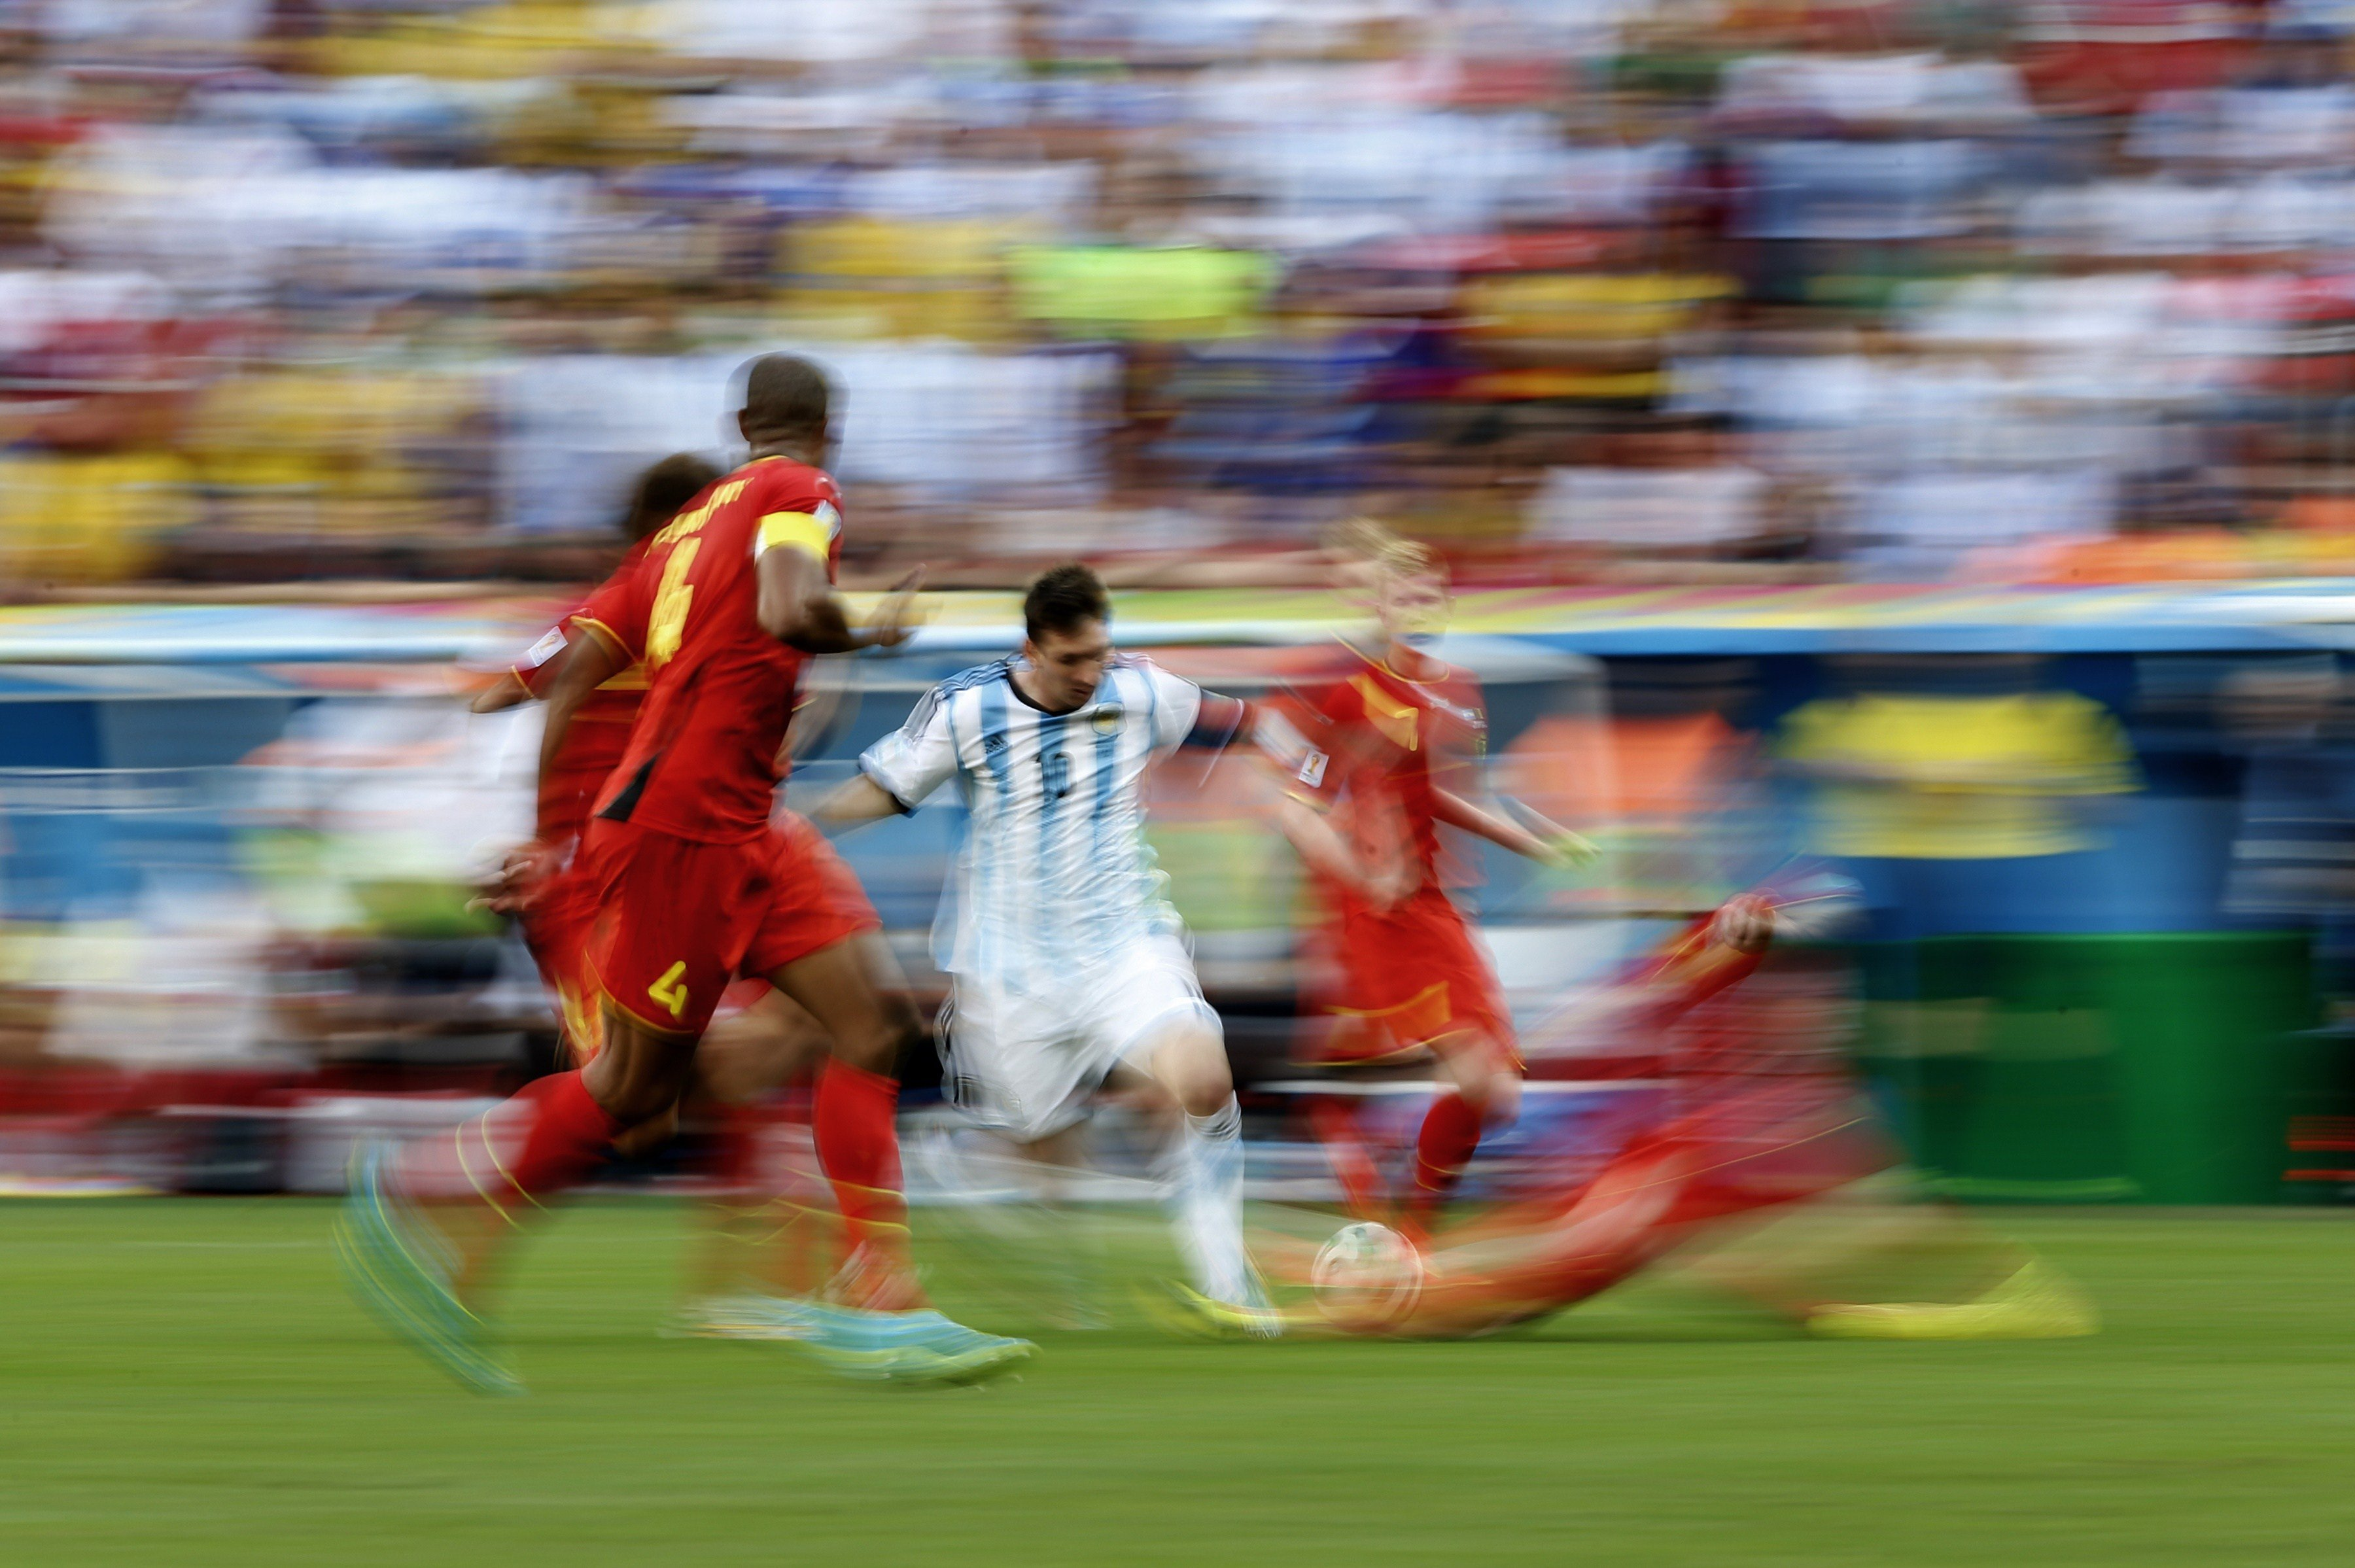 Argentina's Lionel Messi  vies for the ball during a quarter-final football match between Argentina and Belgium at the Mane Garrincha National Stadium in Brasilia during the 2014 FIFA World Cup on July 5, 2014.